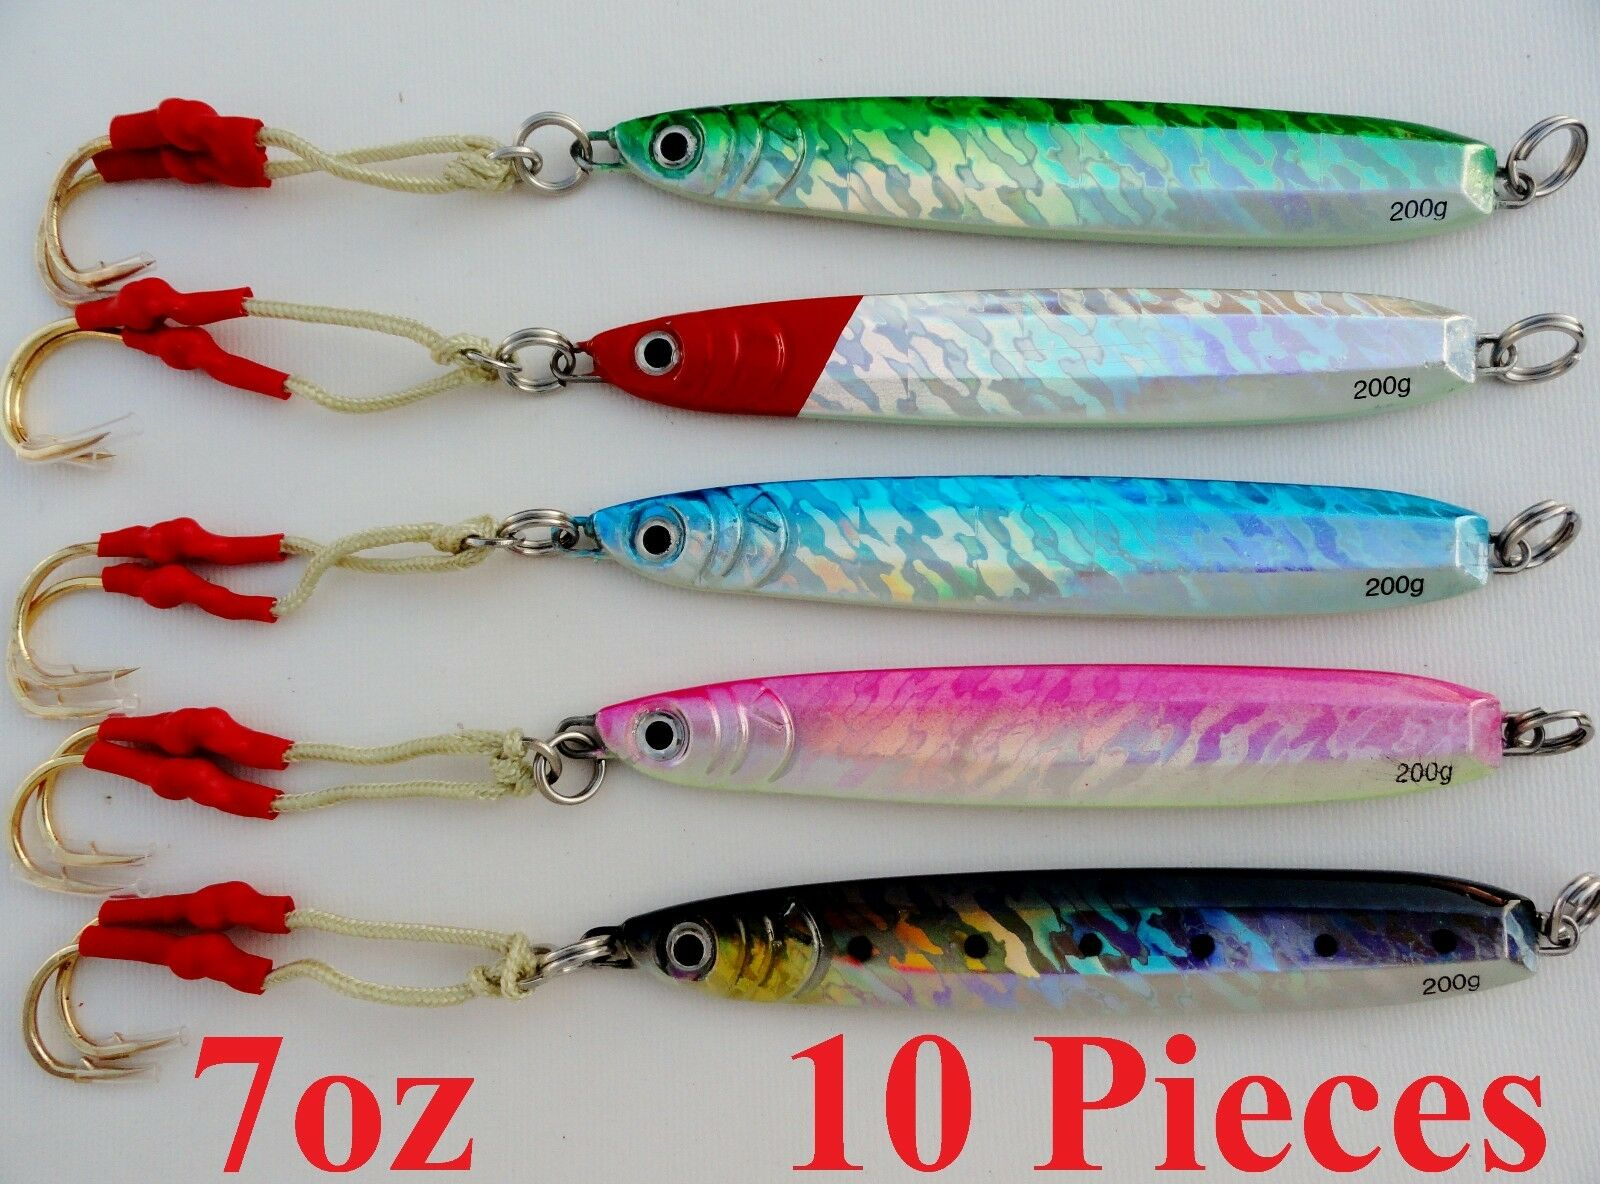 10  pcs Knife Jigs 200g 7oz greenical Butterfly Saltwater Fish Lures Combo colors  gorgeous